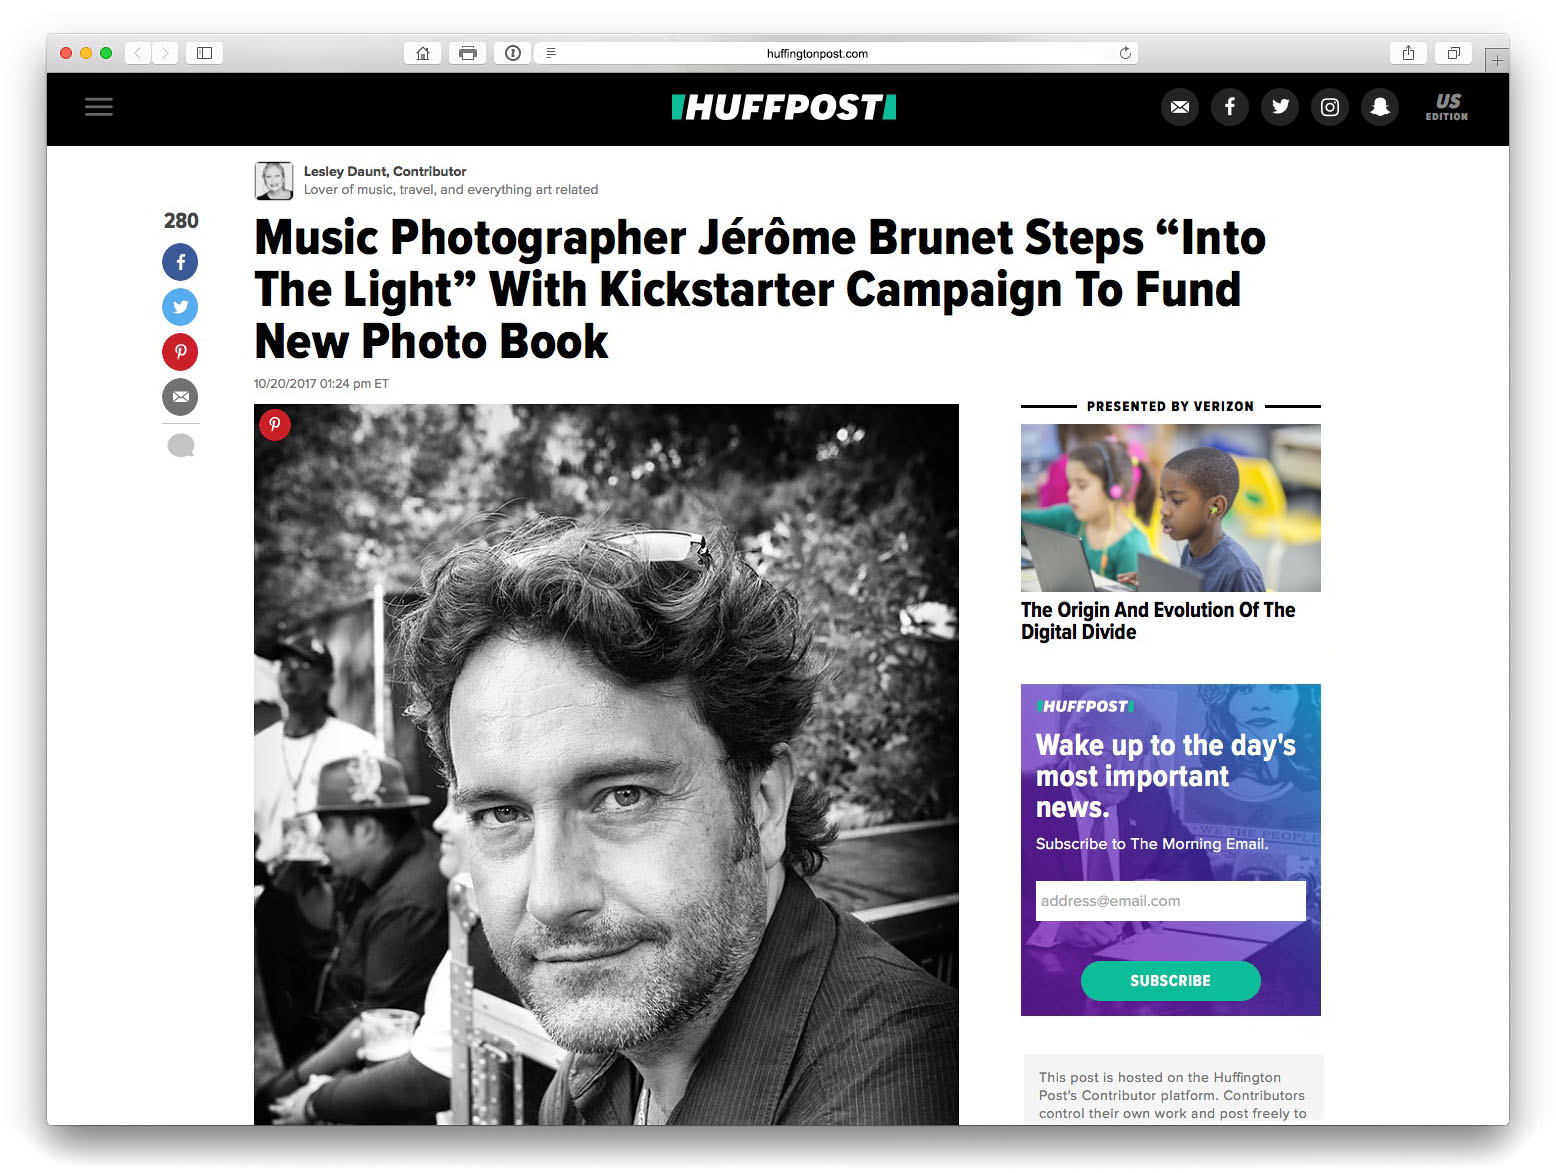 Jerome_Brunet_The_Huffington_Post